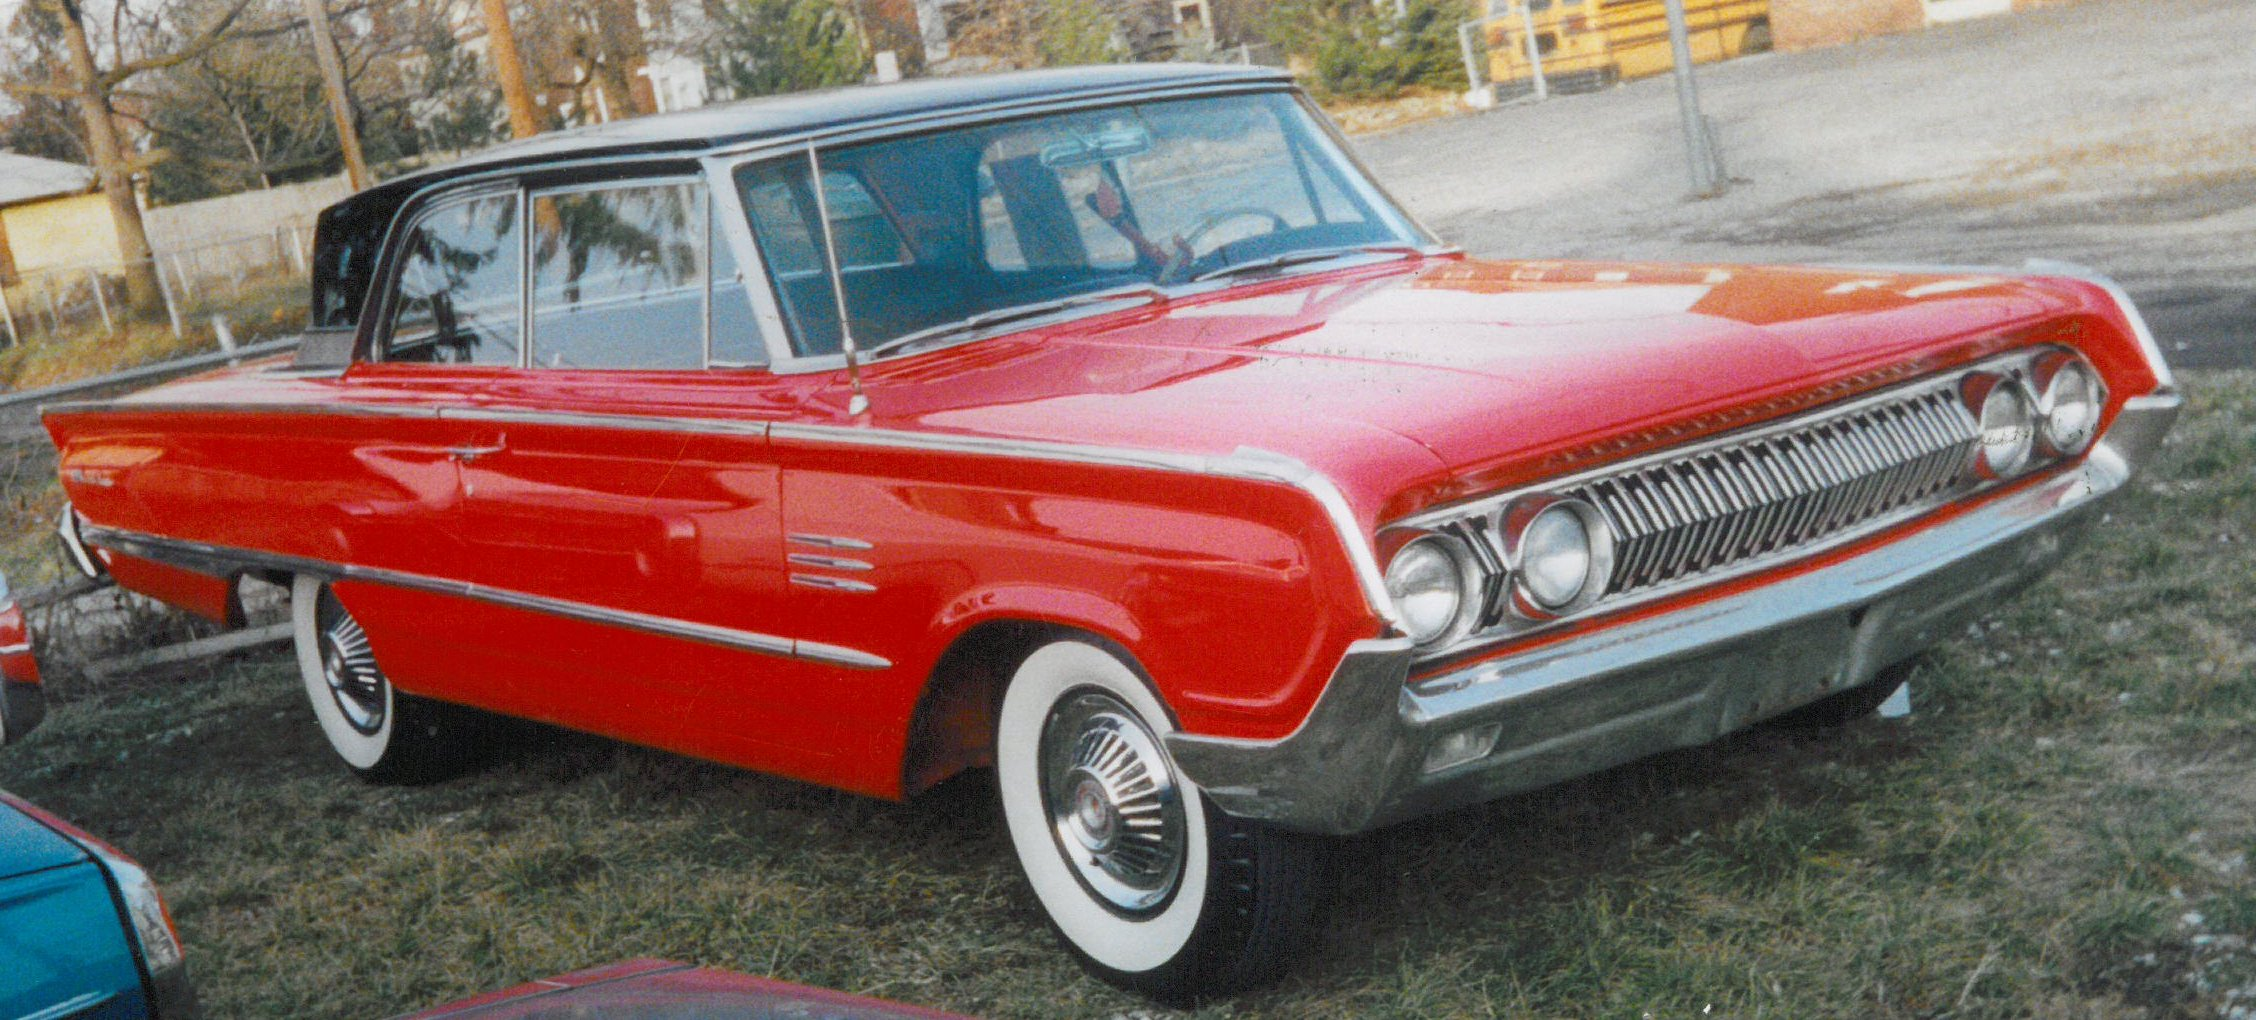 Build Your Own Ford >> File:1964 Mercury Montclair.jpg - Wikimedia Commons